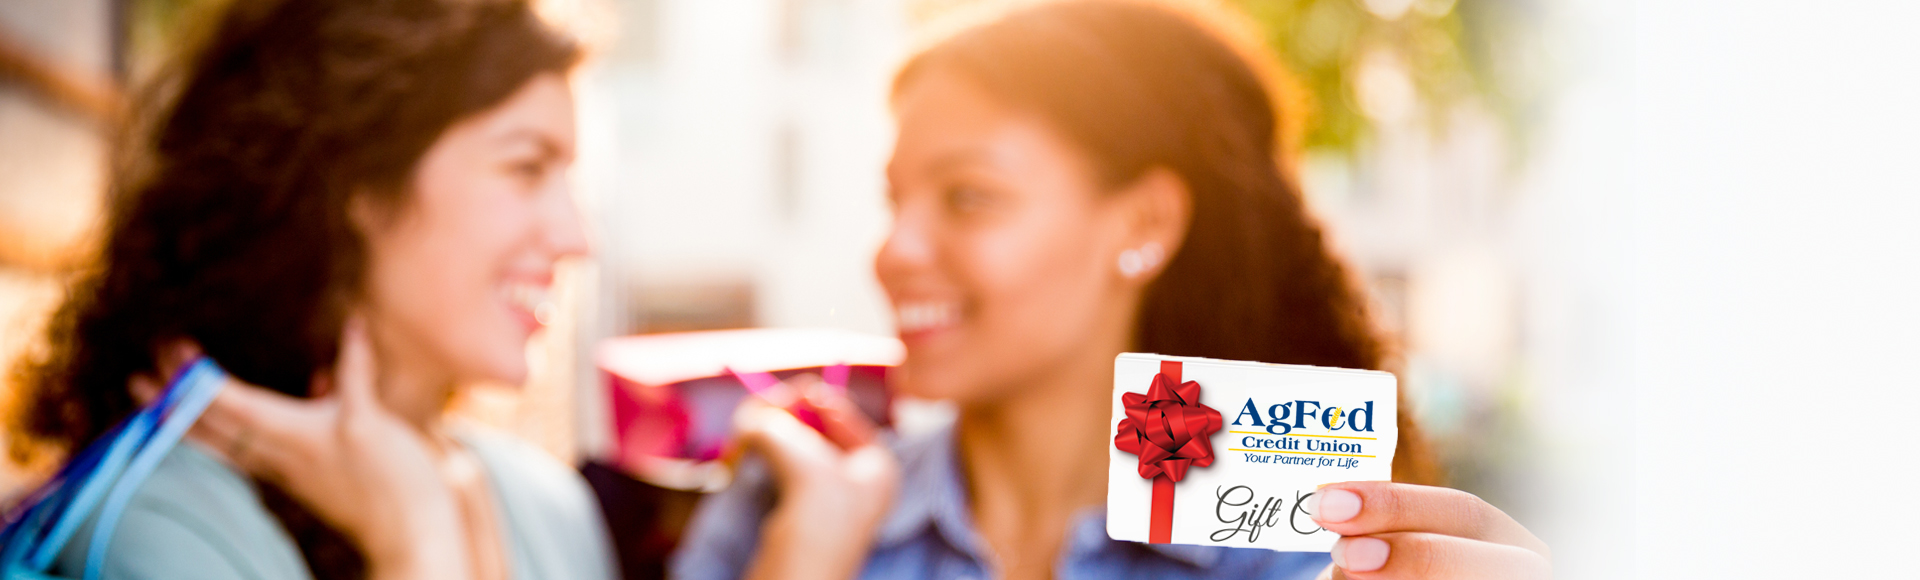 Gift_Cards_header_Q1_2017